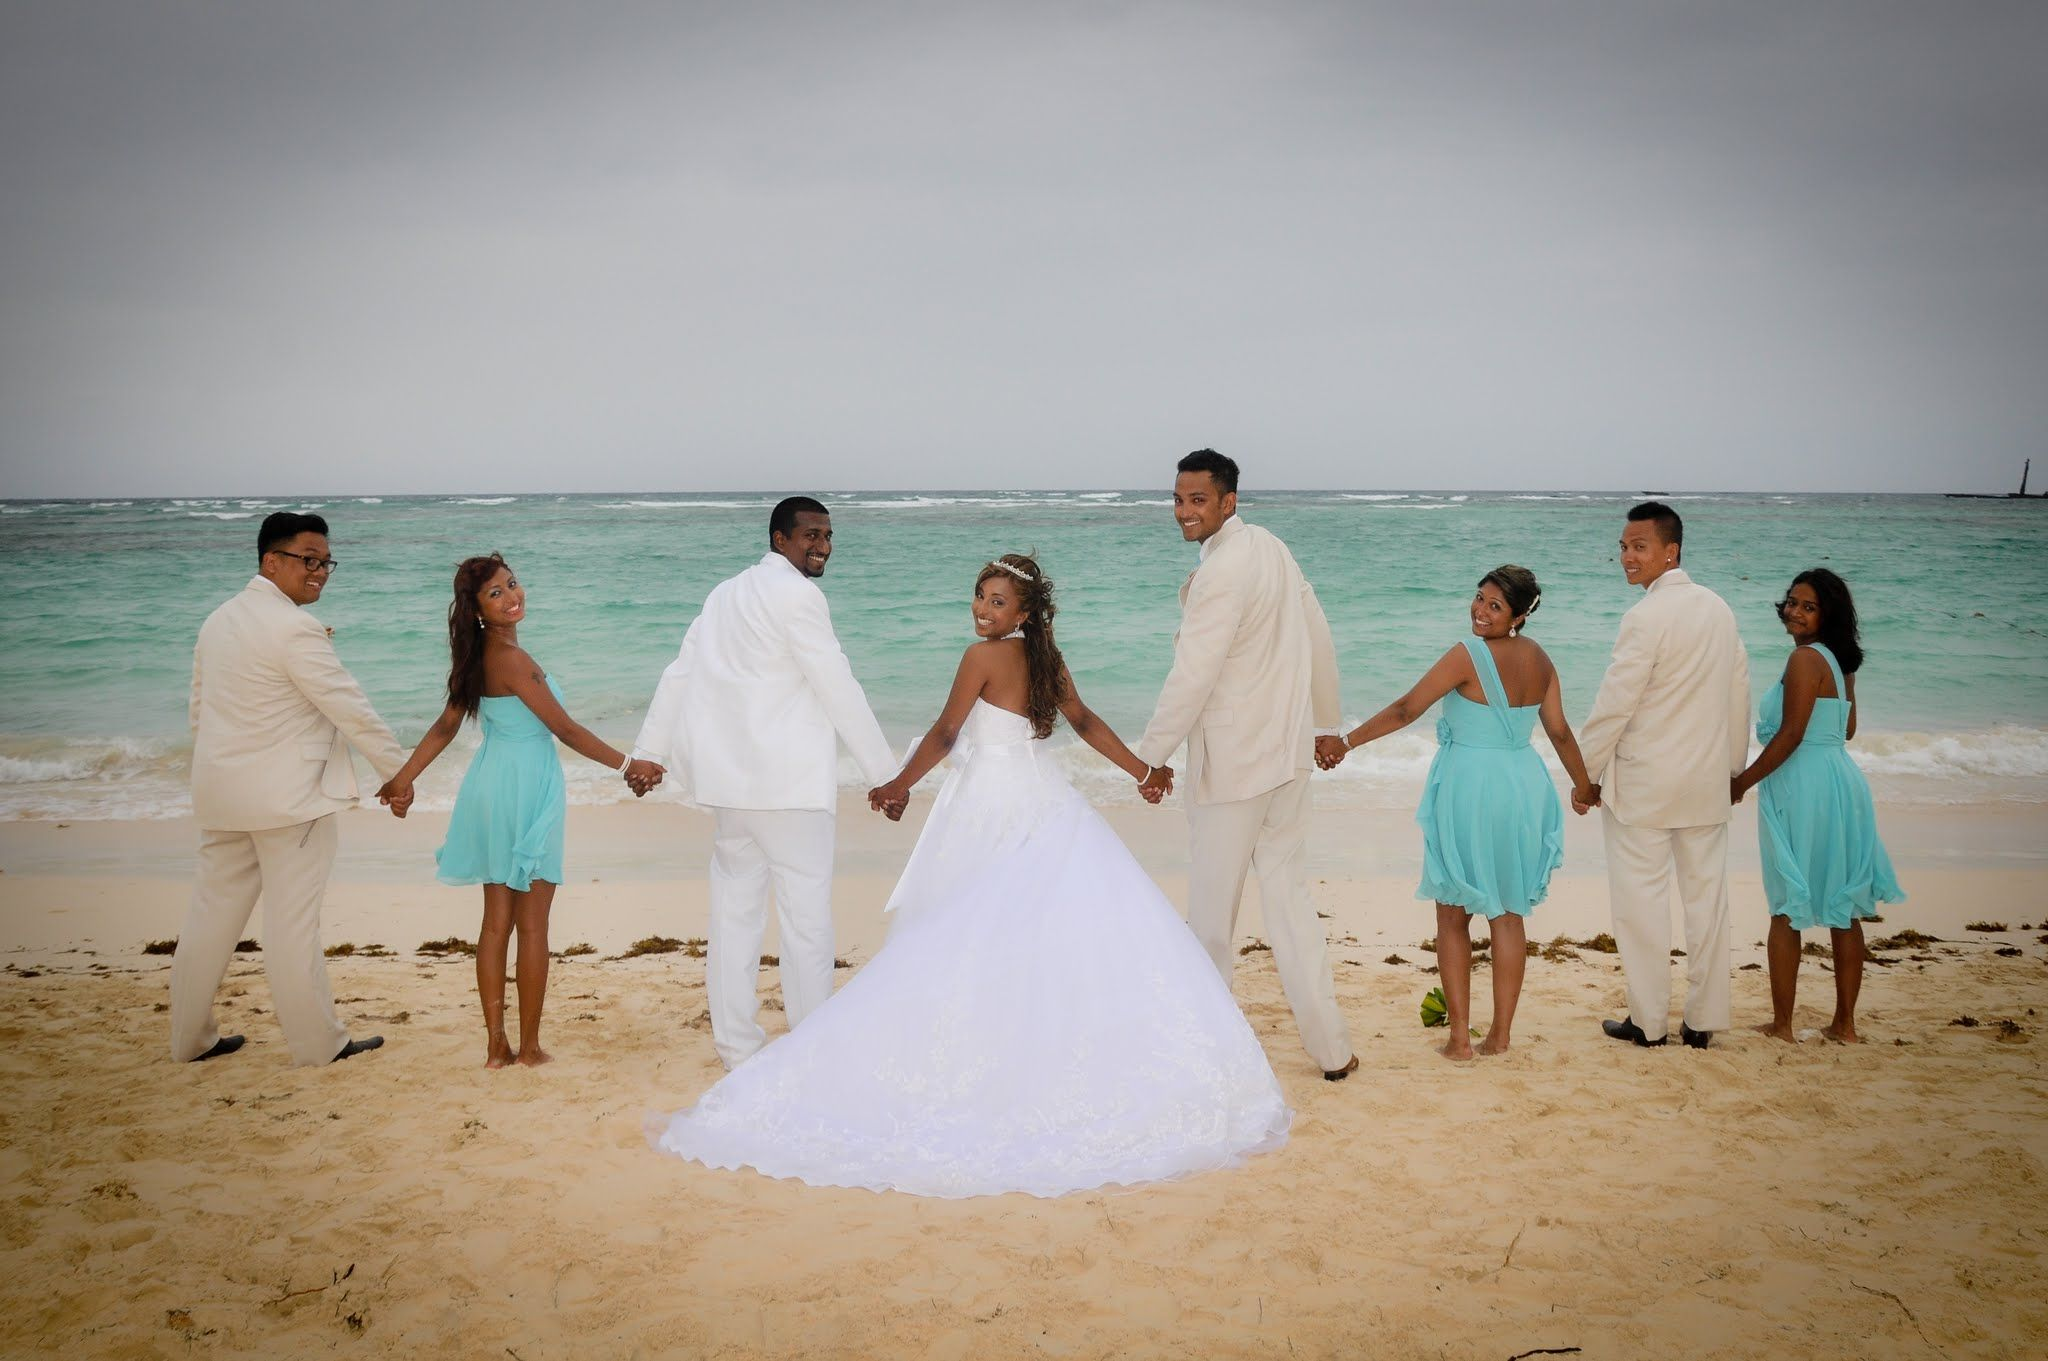 Beach Side Wedding Party Bridesmaids In Short Aqua Blue Chiffon Dresses Groomsmen In Kh Wedding Party Bridesmaid Beach Wedding Colors White Wedding Gowns,Online Shopping Wedding Dresses In Karachi With Price